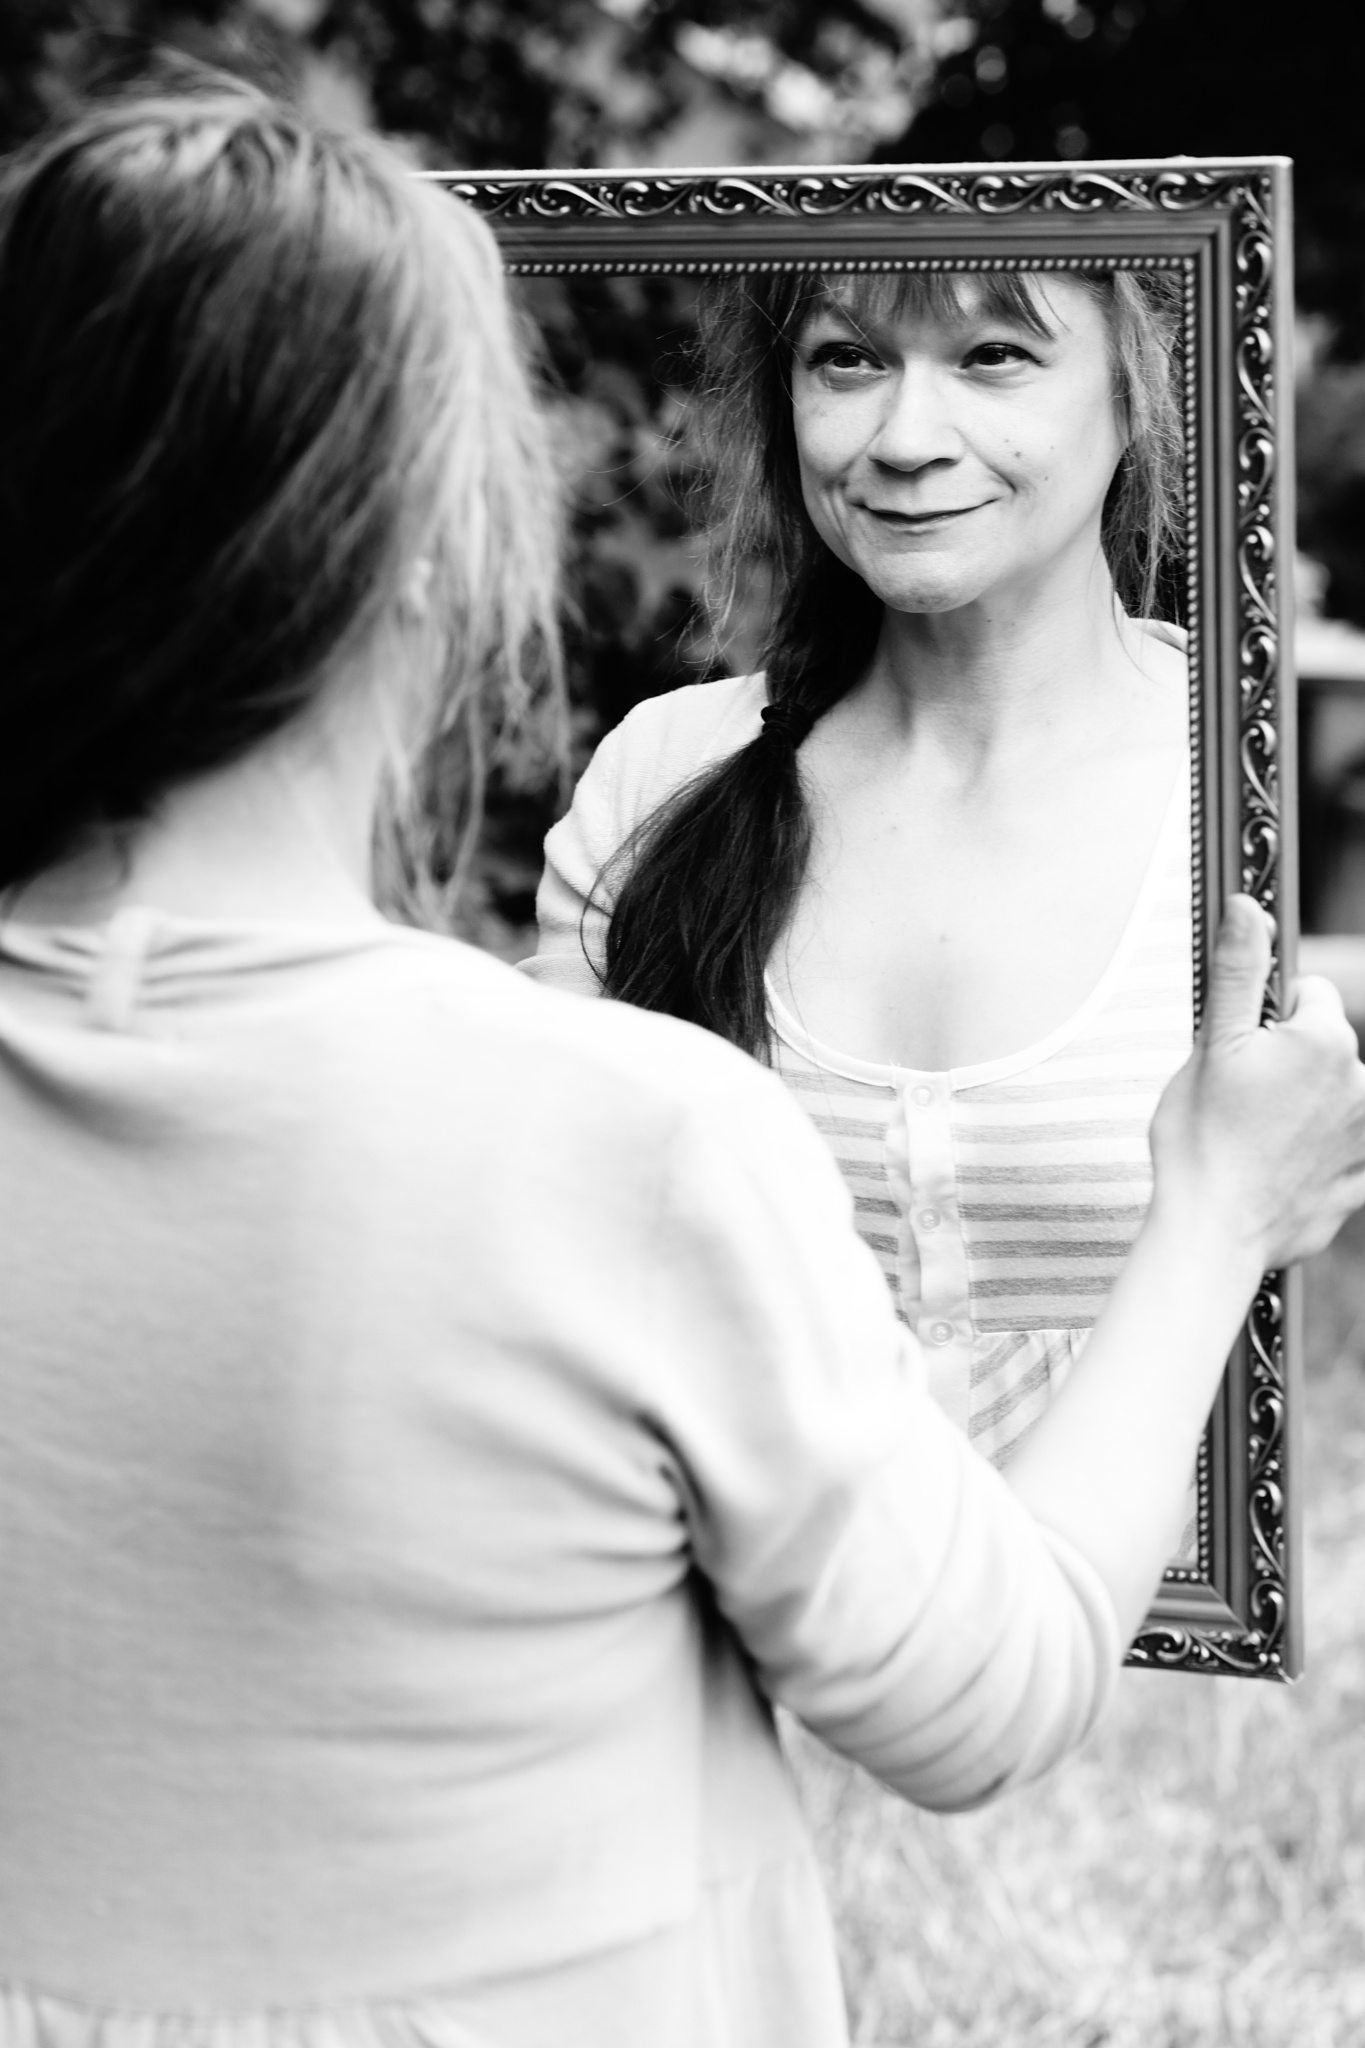 Lady in the Mirror by Andreas Karlsson